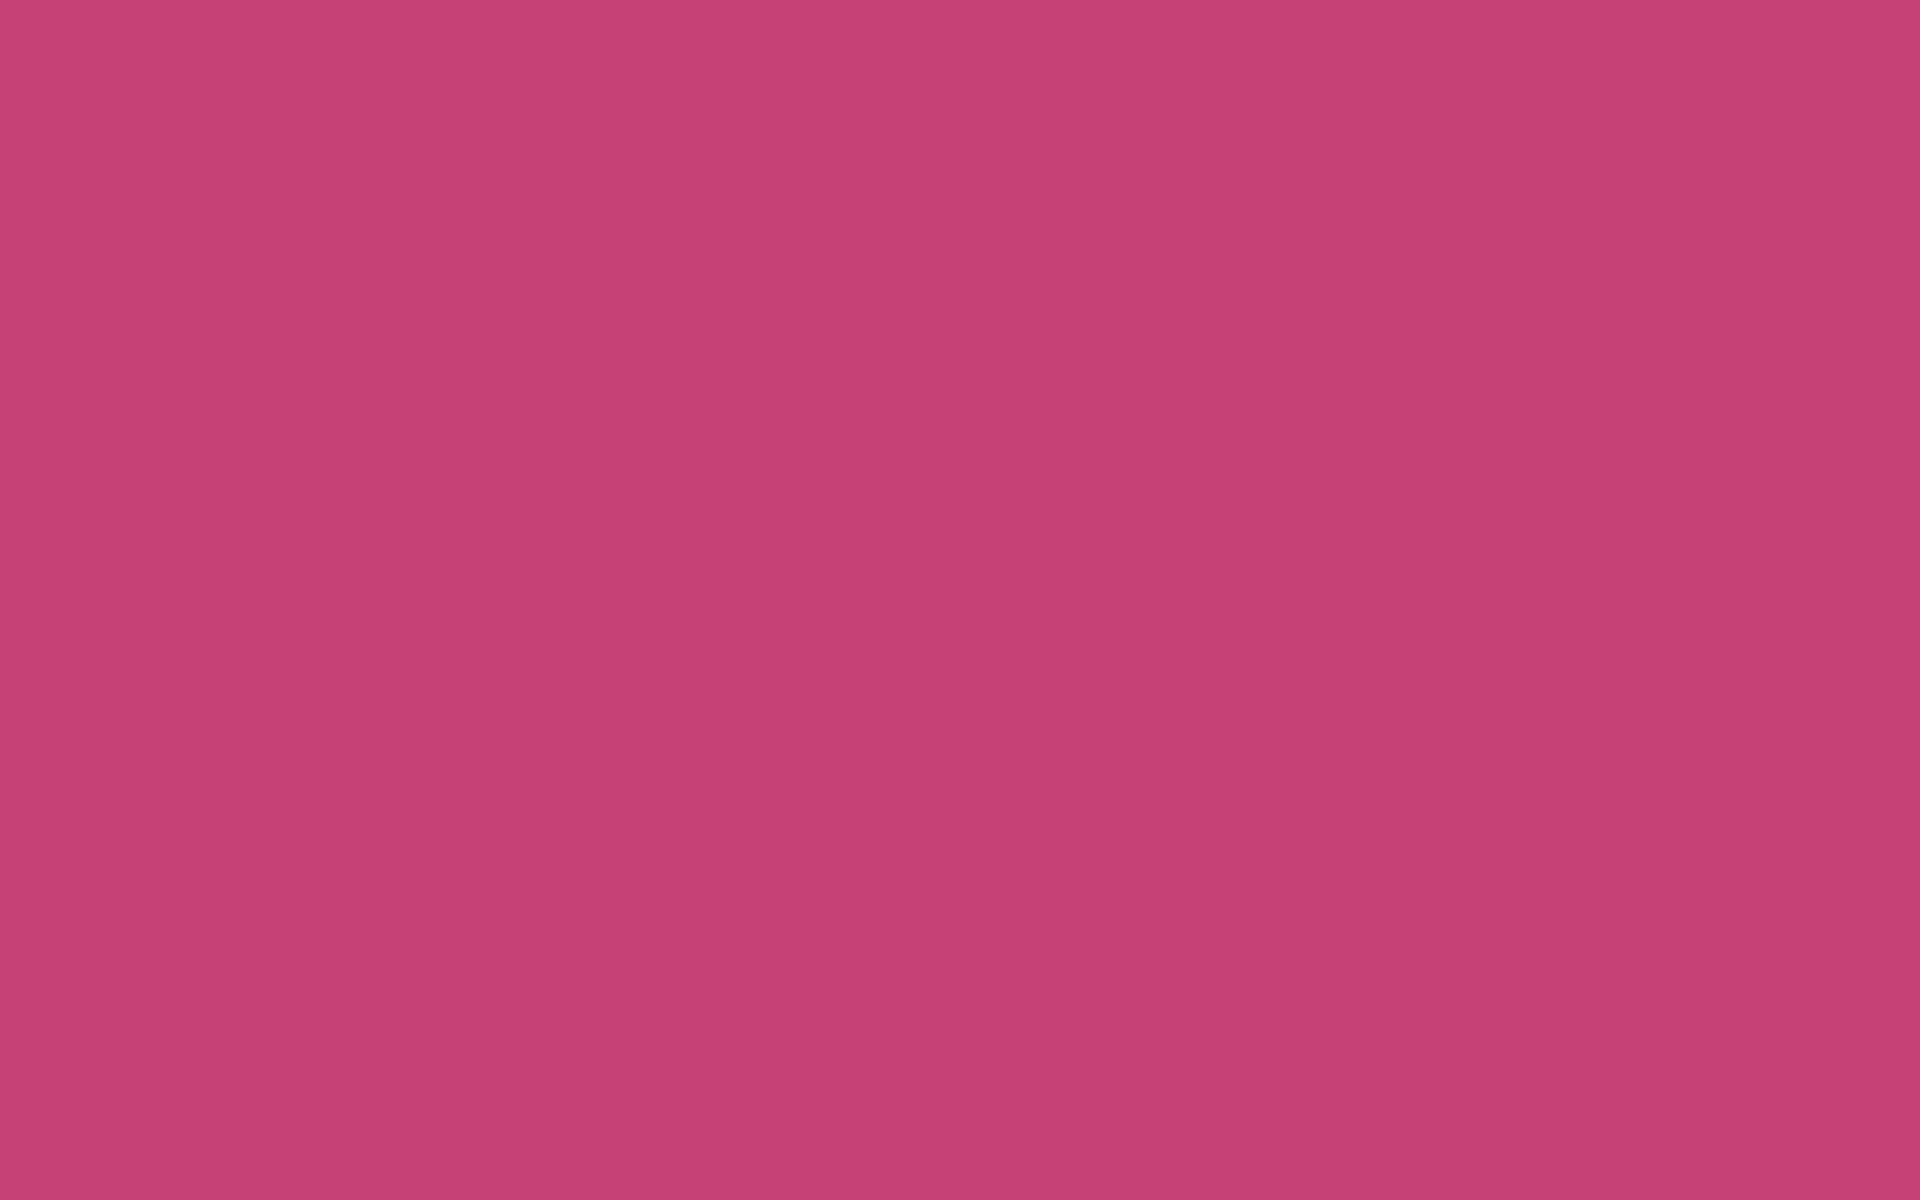 1920x1200 Fuchsia Rose Solid Color Background